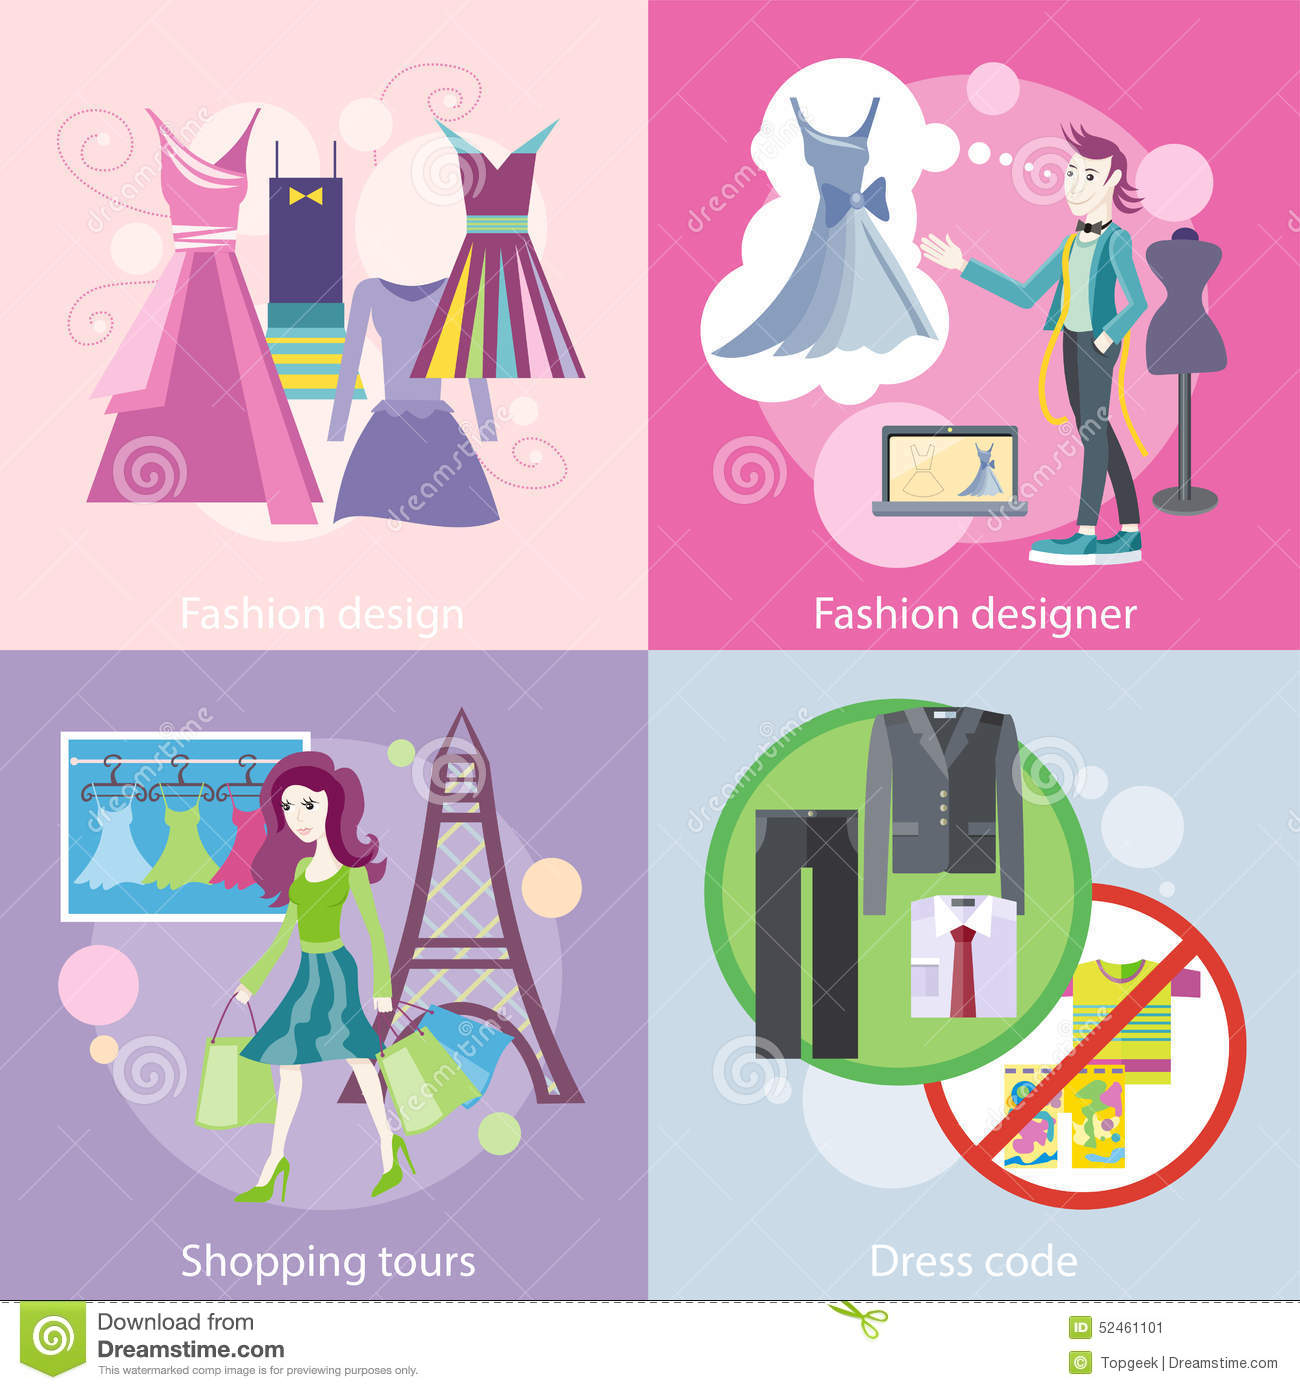 Fashion Designer Design Shopping Tour Dress Code Stock